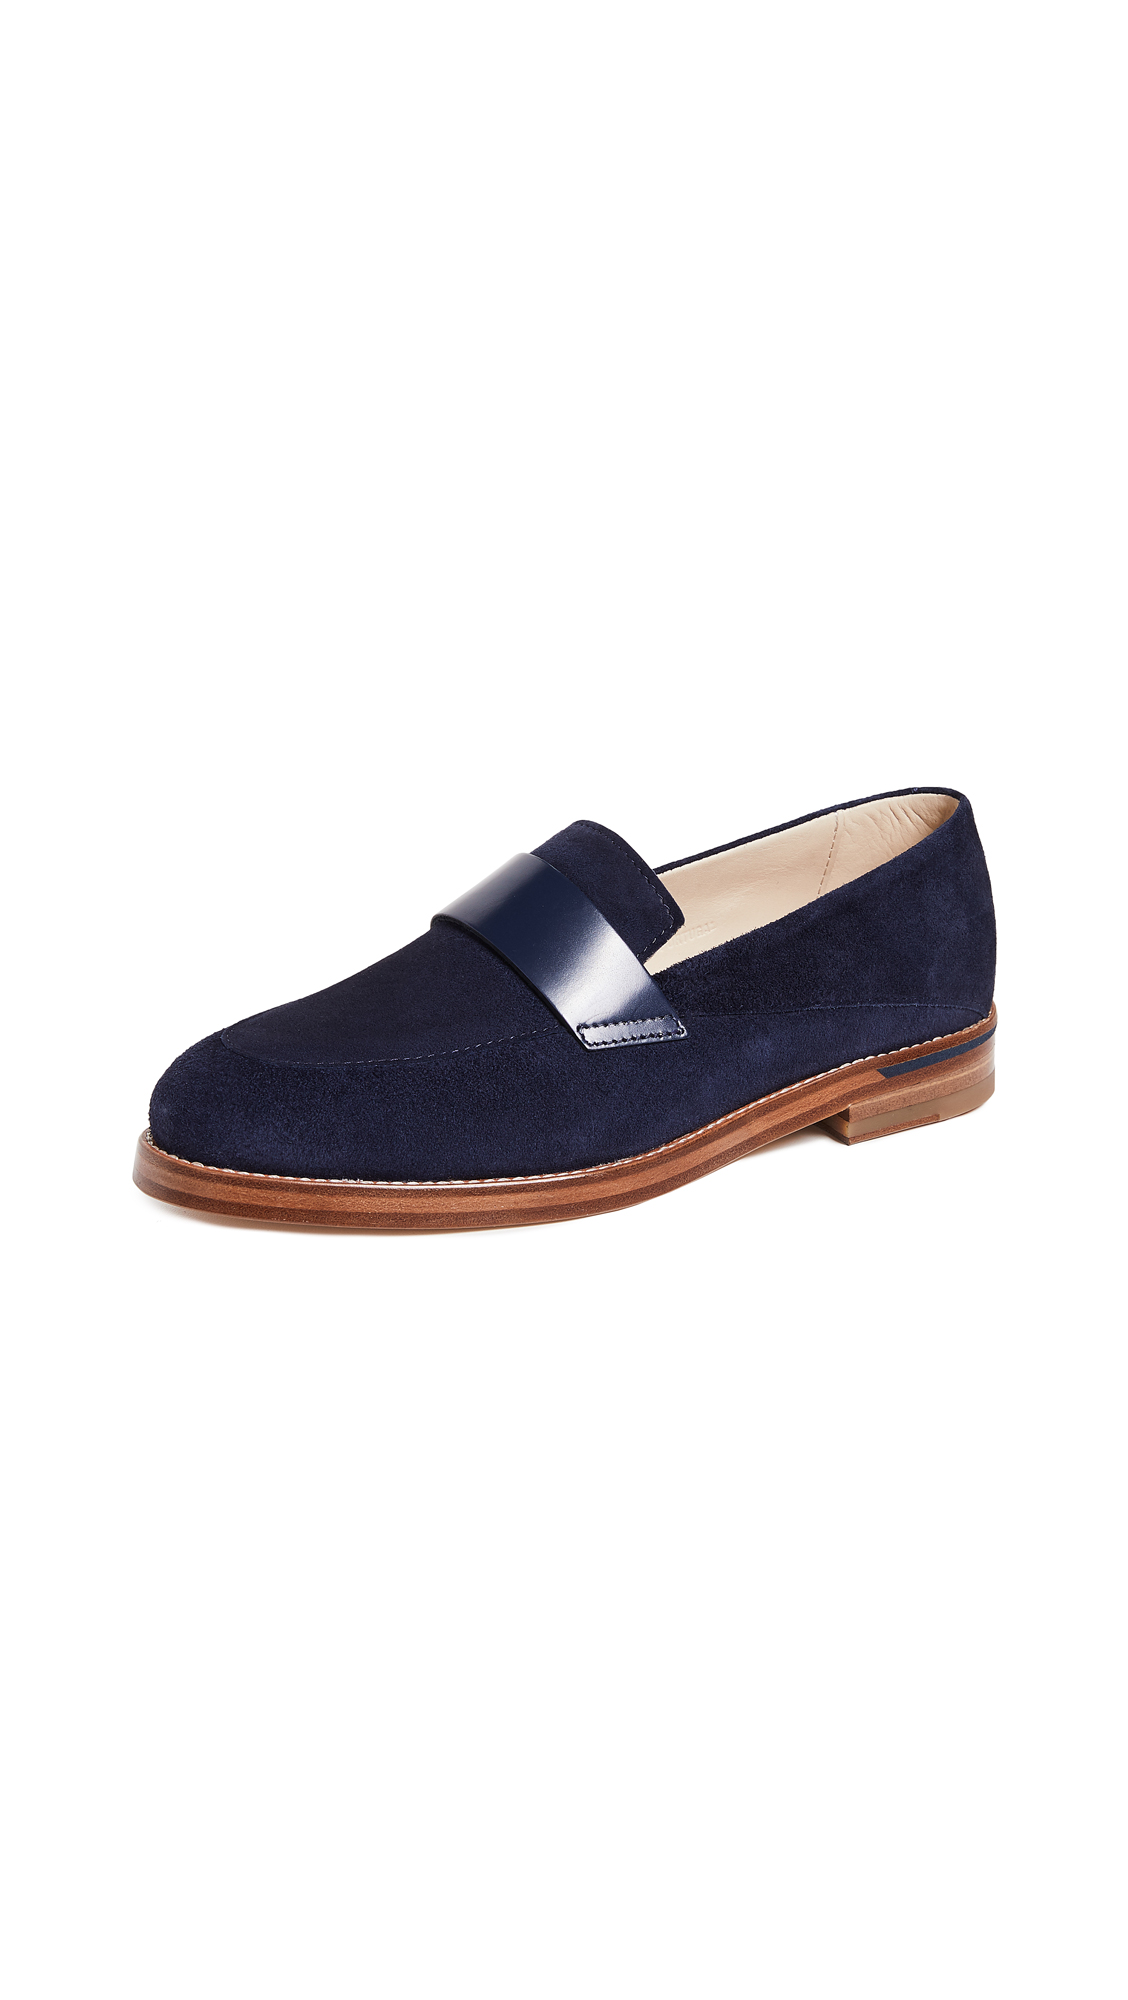 WANT Les Essentiels Tereza Slip On Loafers